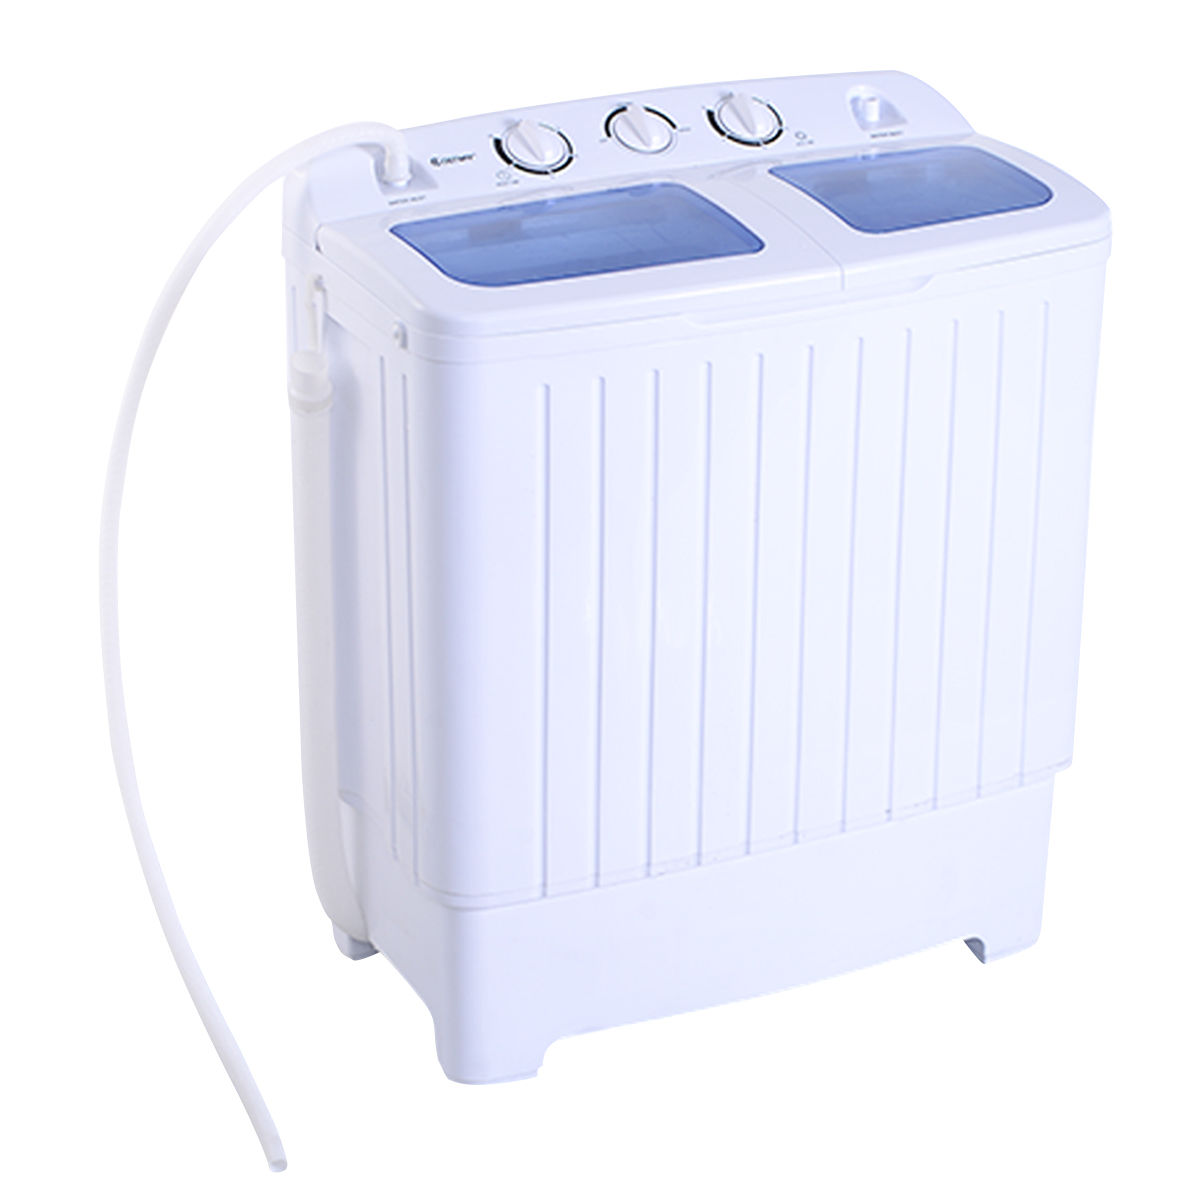 costway portable mini compact twin tub 176lb washing machine washer spin dryer